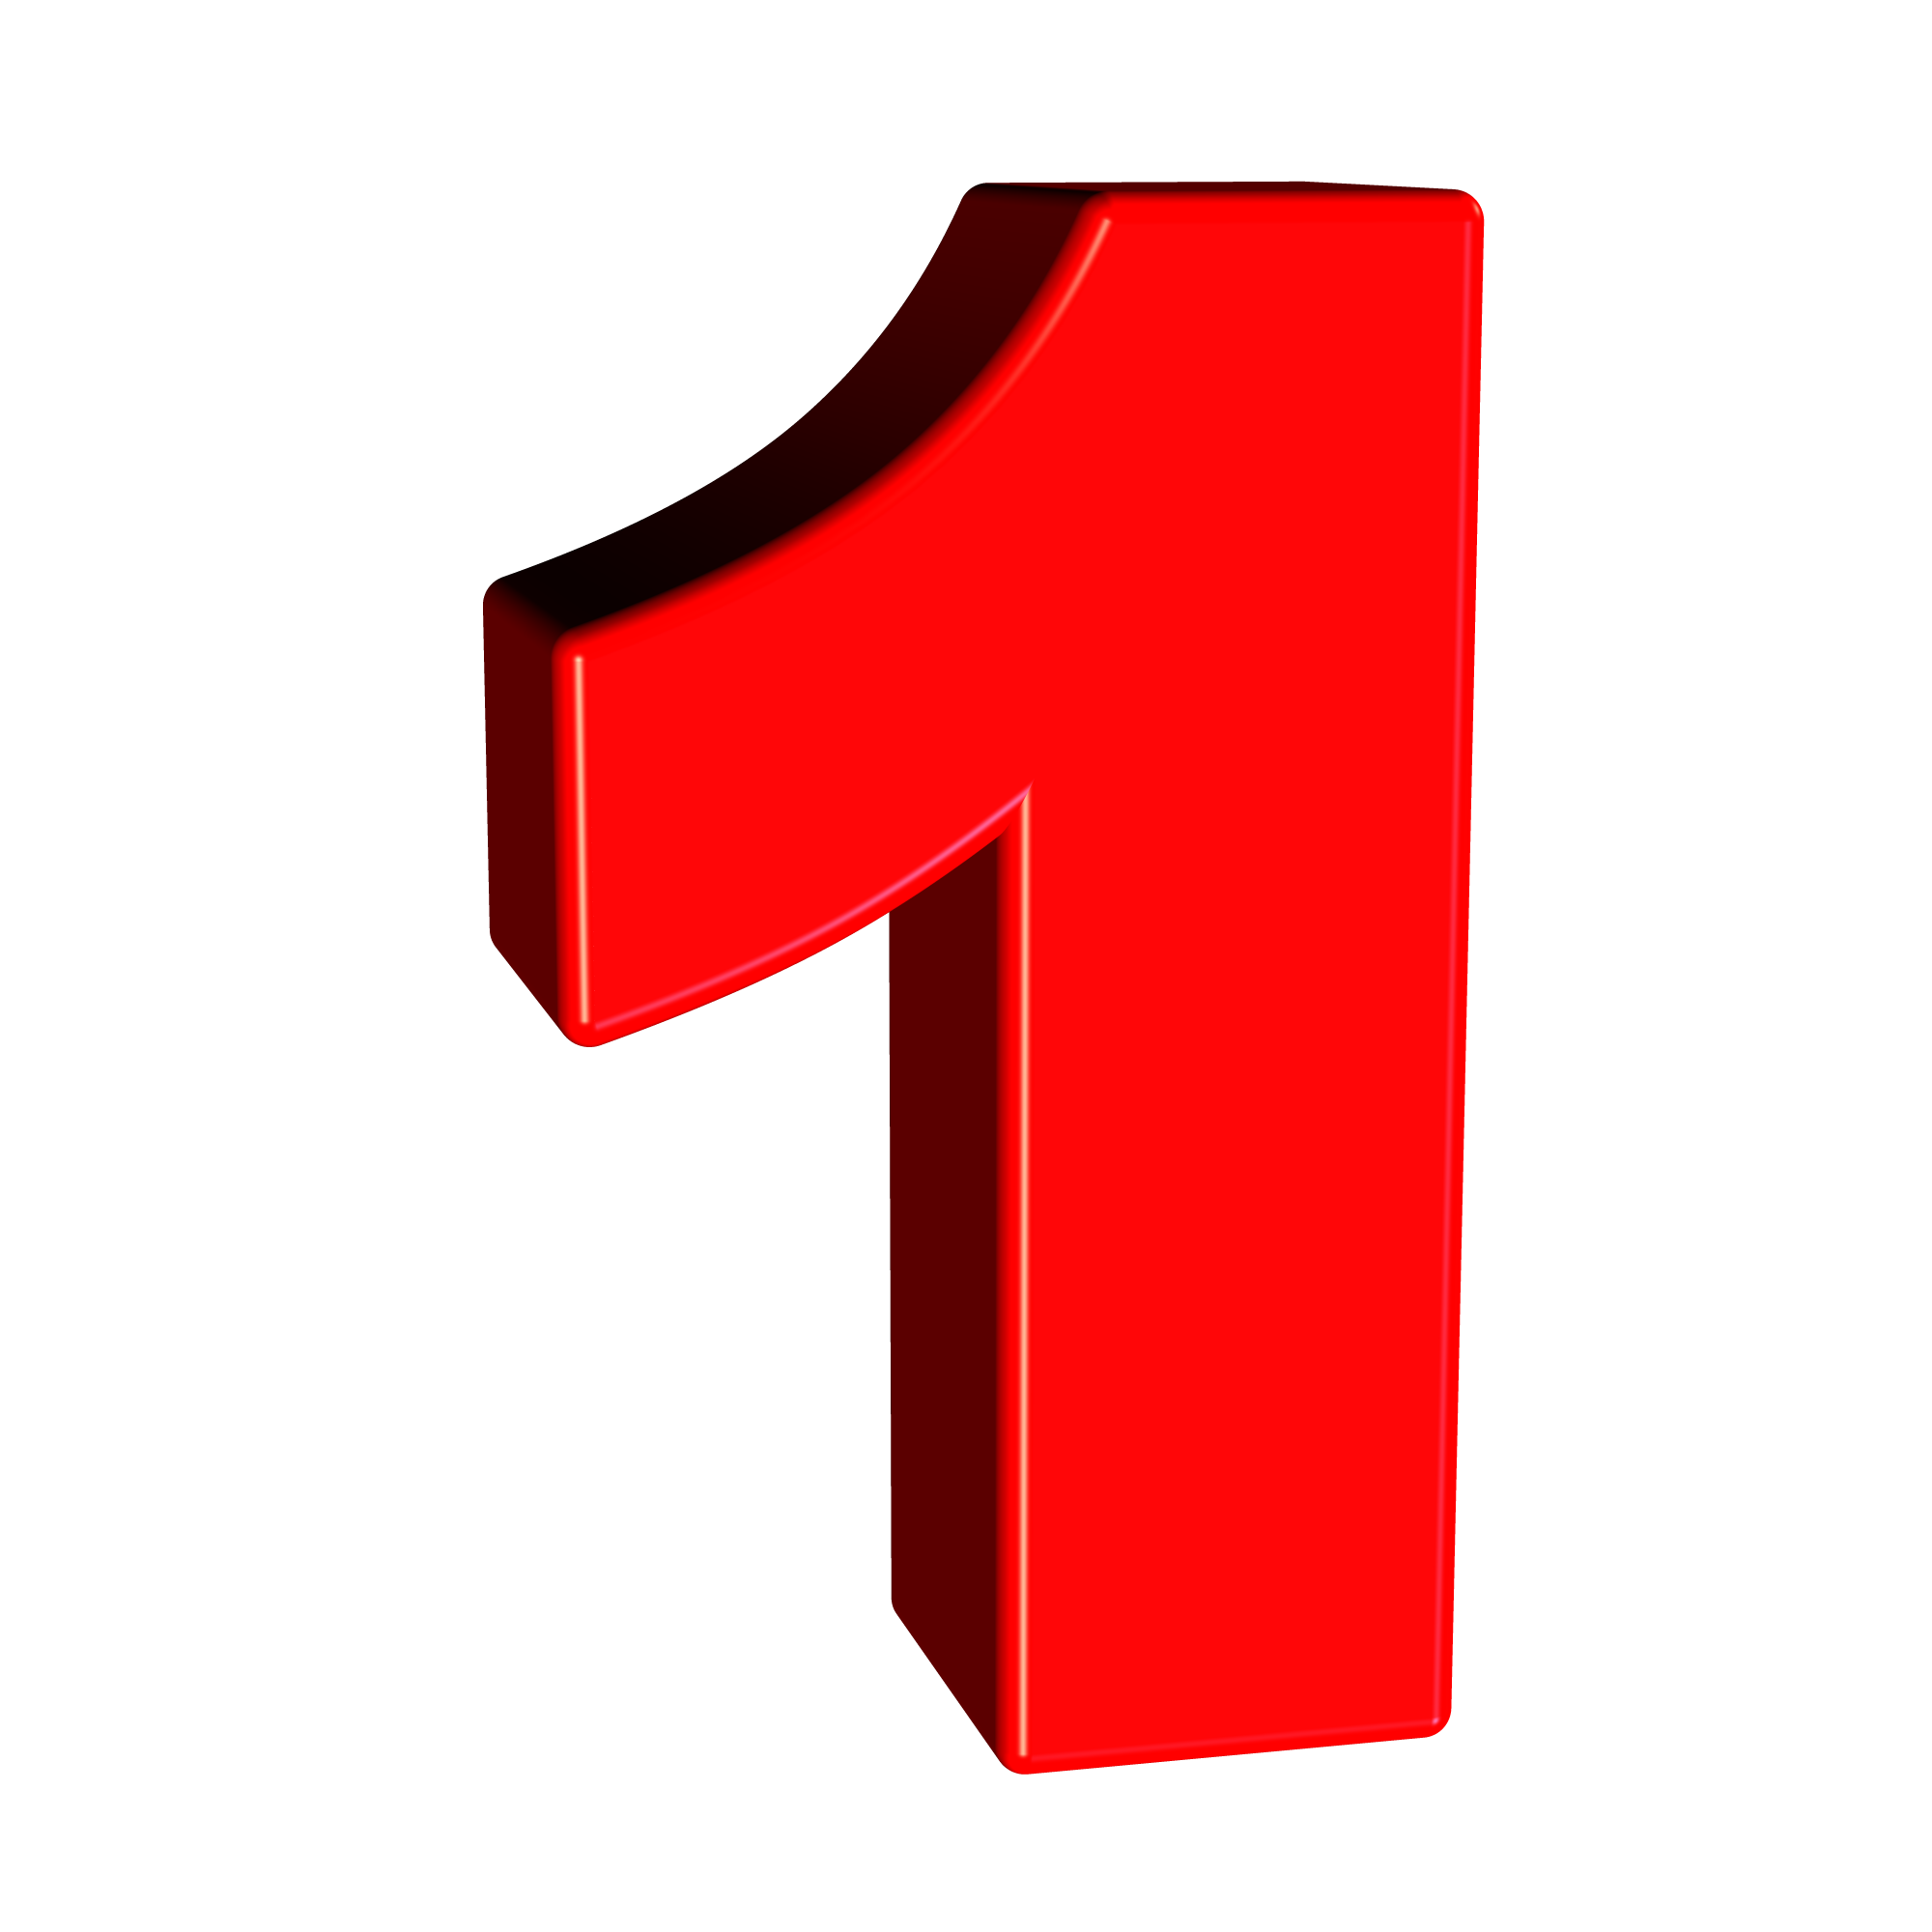 Red numbers png. Number image free stock